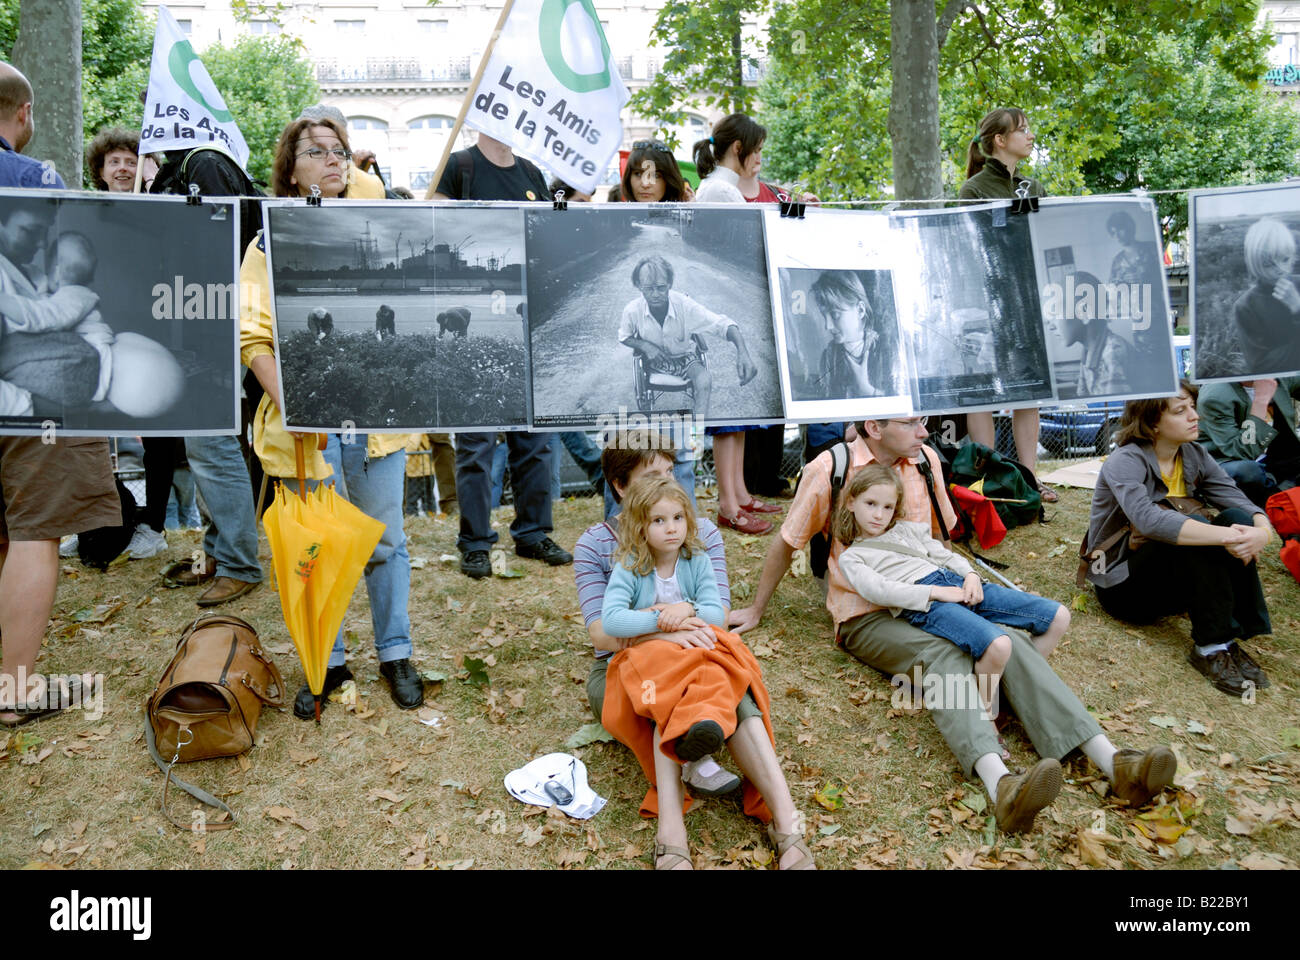 Paris FRANCE, 'Anti Nuclear Power' Demonstration by Several Environmental NGOs French Family, Children Sitting - Stock Image